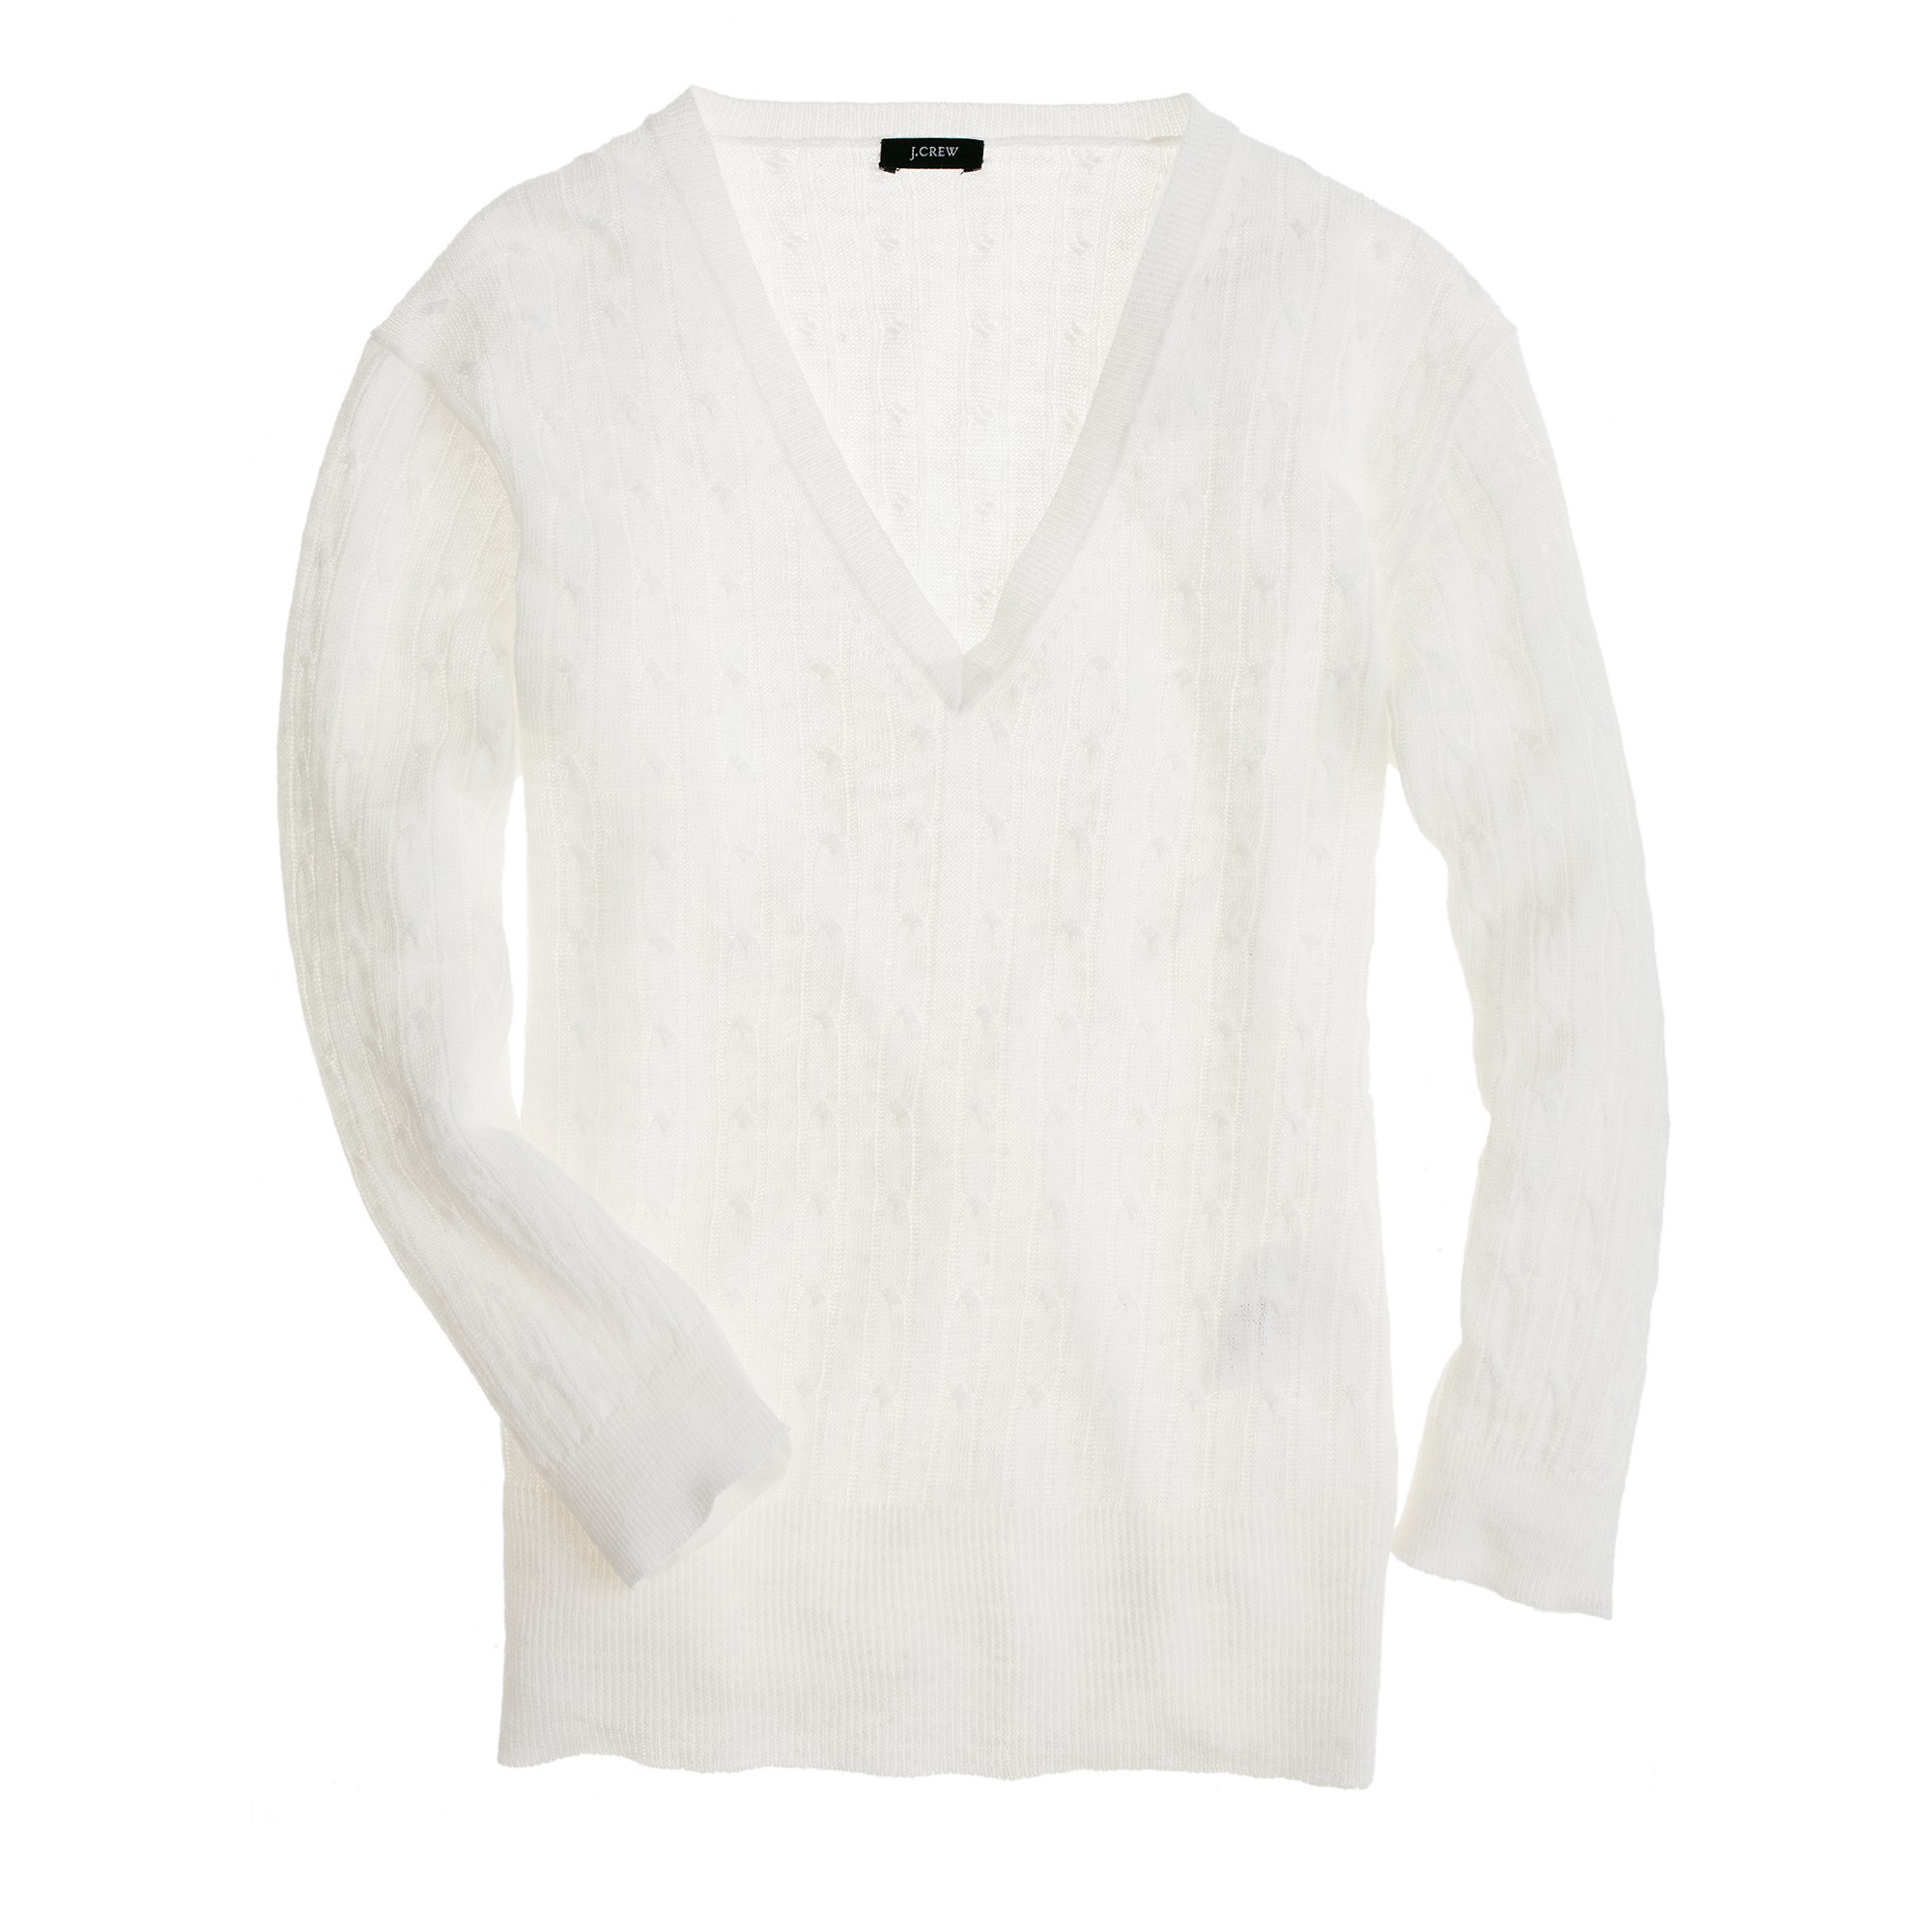 J.crew Linen V-neck Cable-knit Sweater in White | Lyst